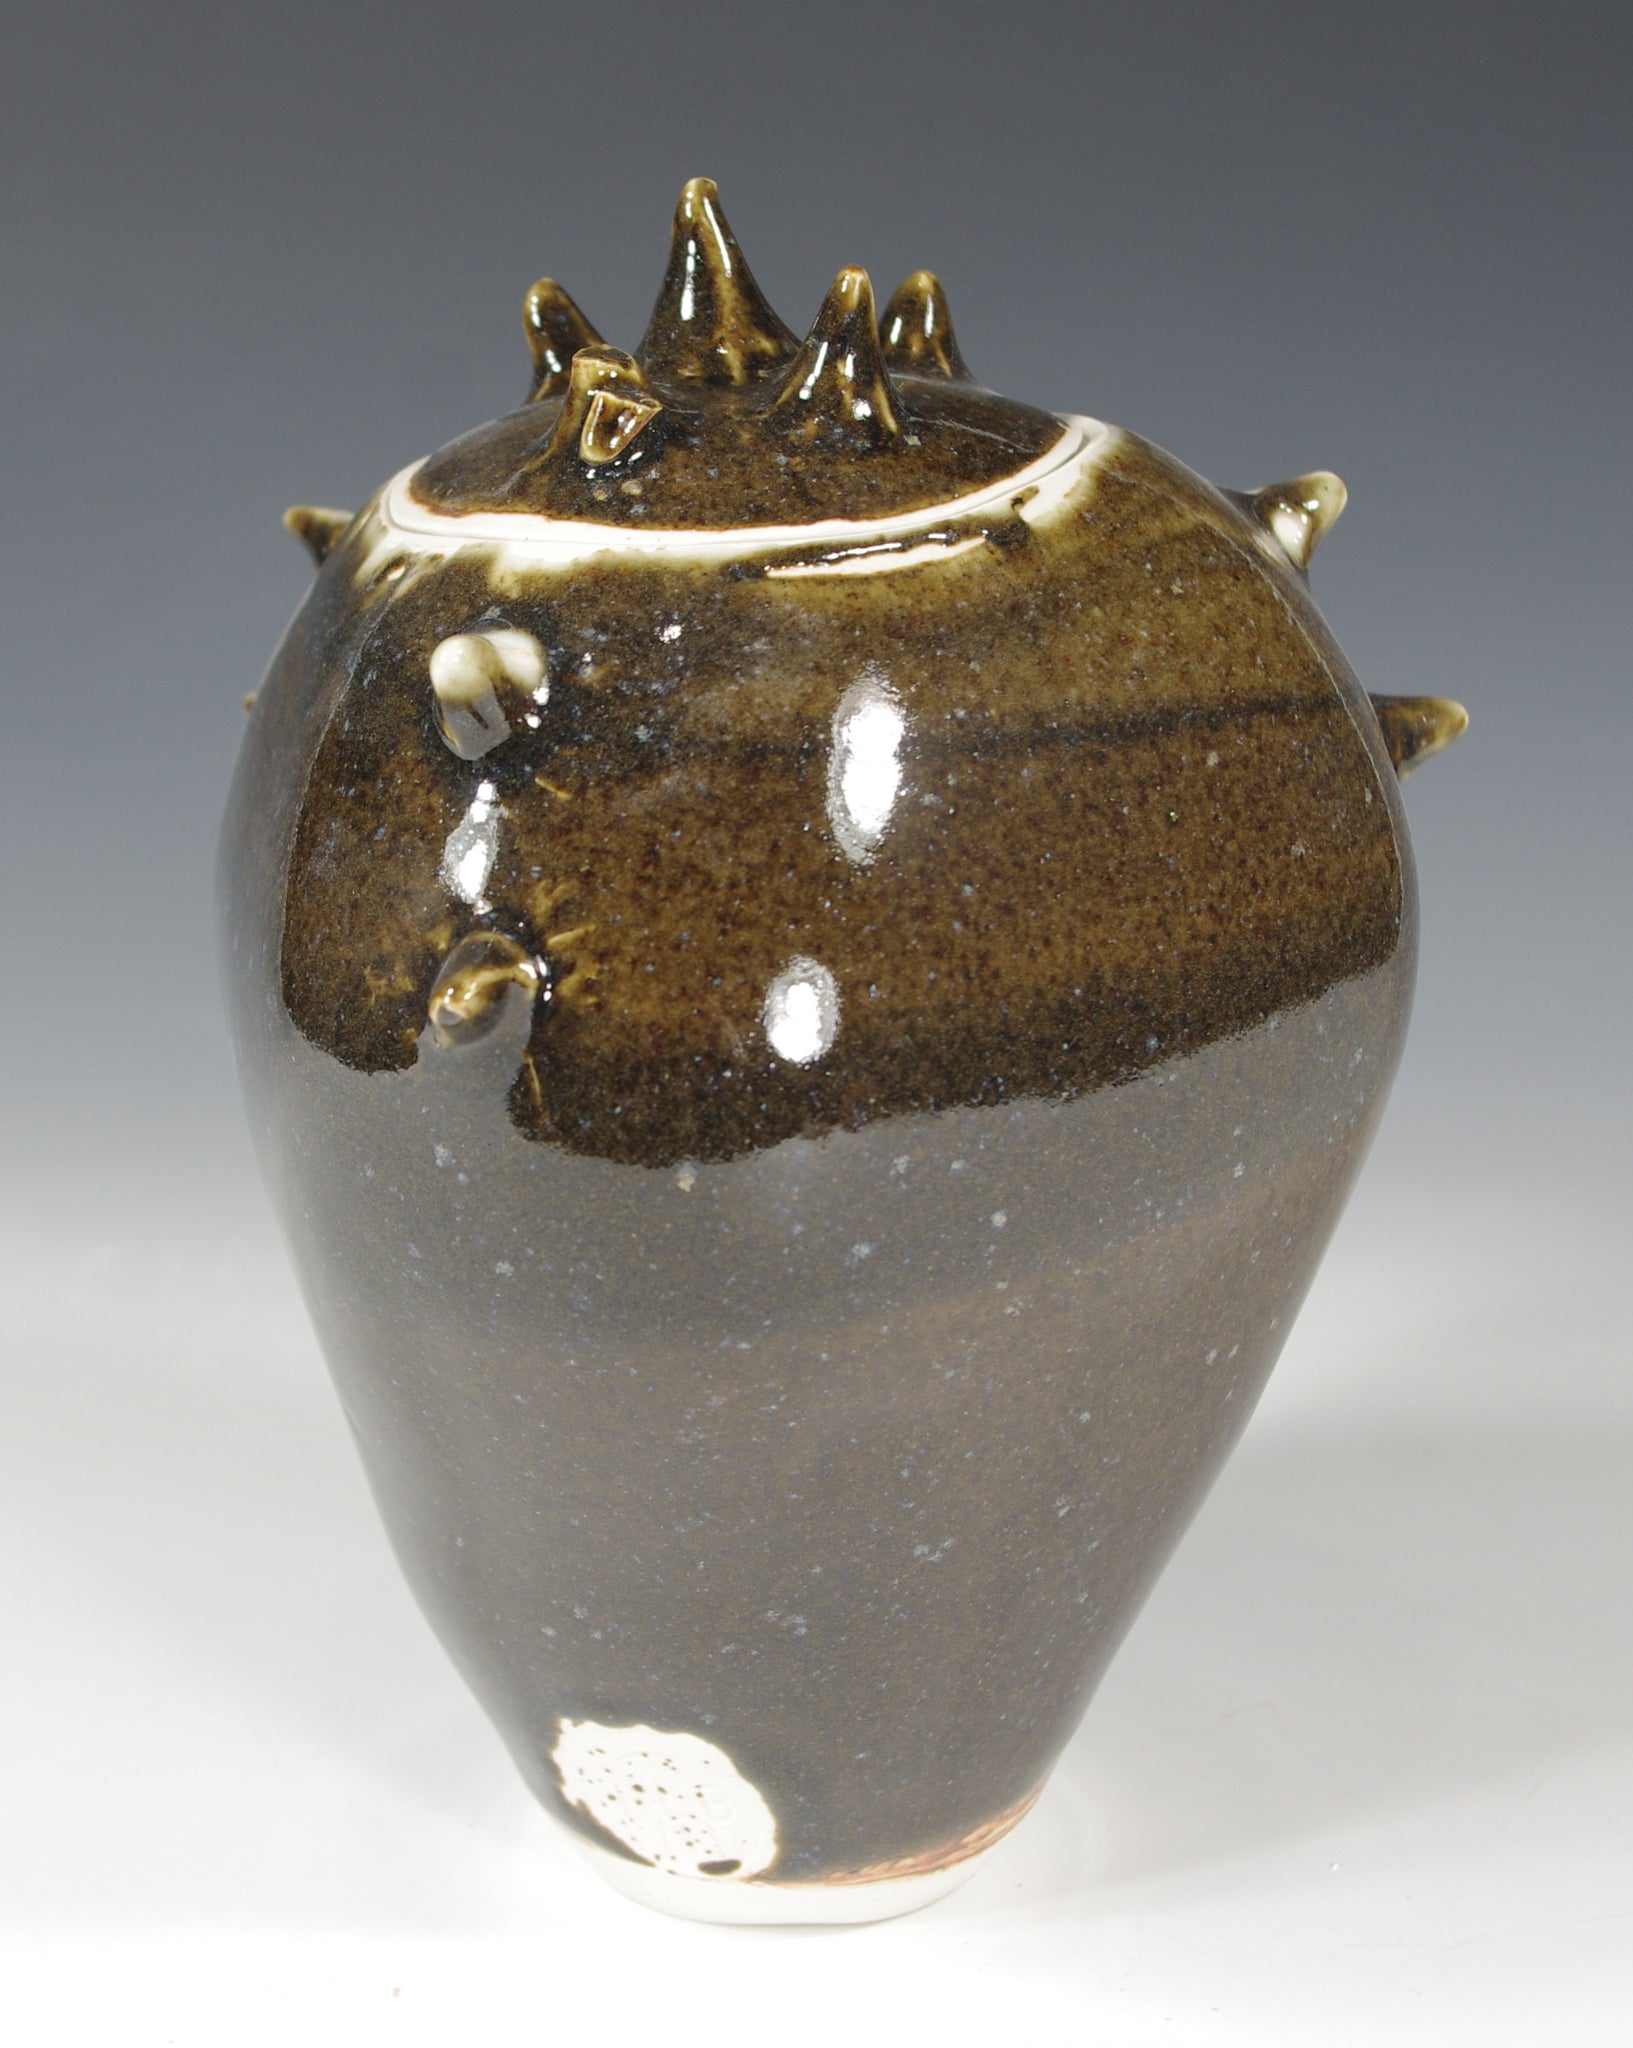 Brown Spiked Jar - Ceramic Sculpture by Skip Bleecker